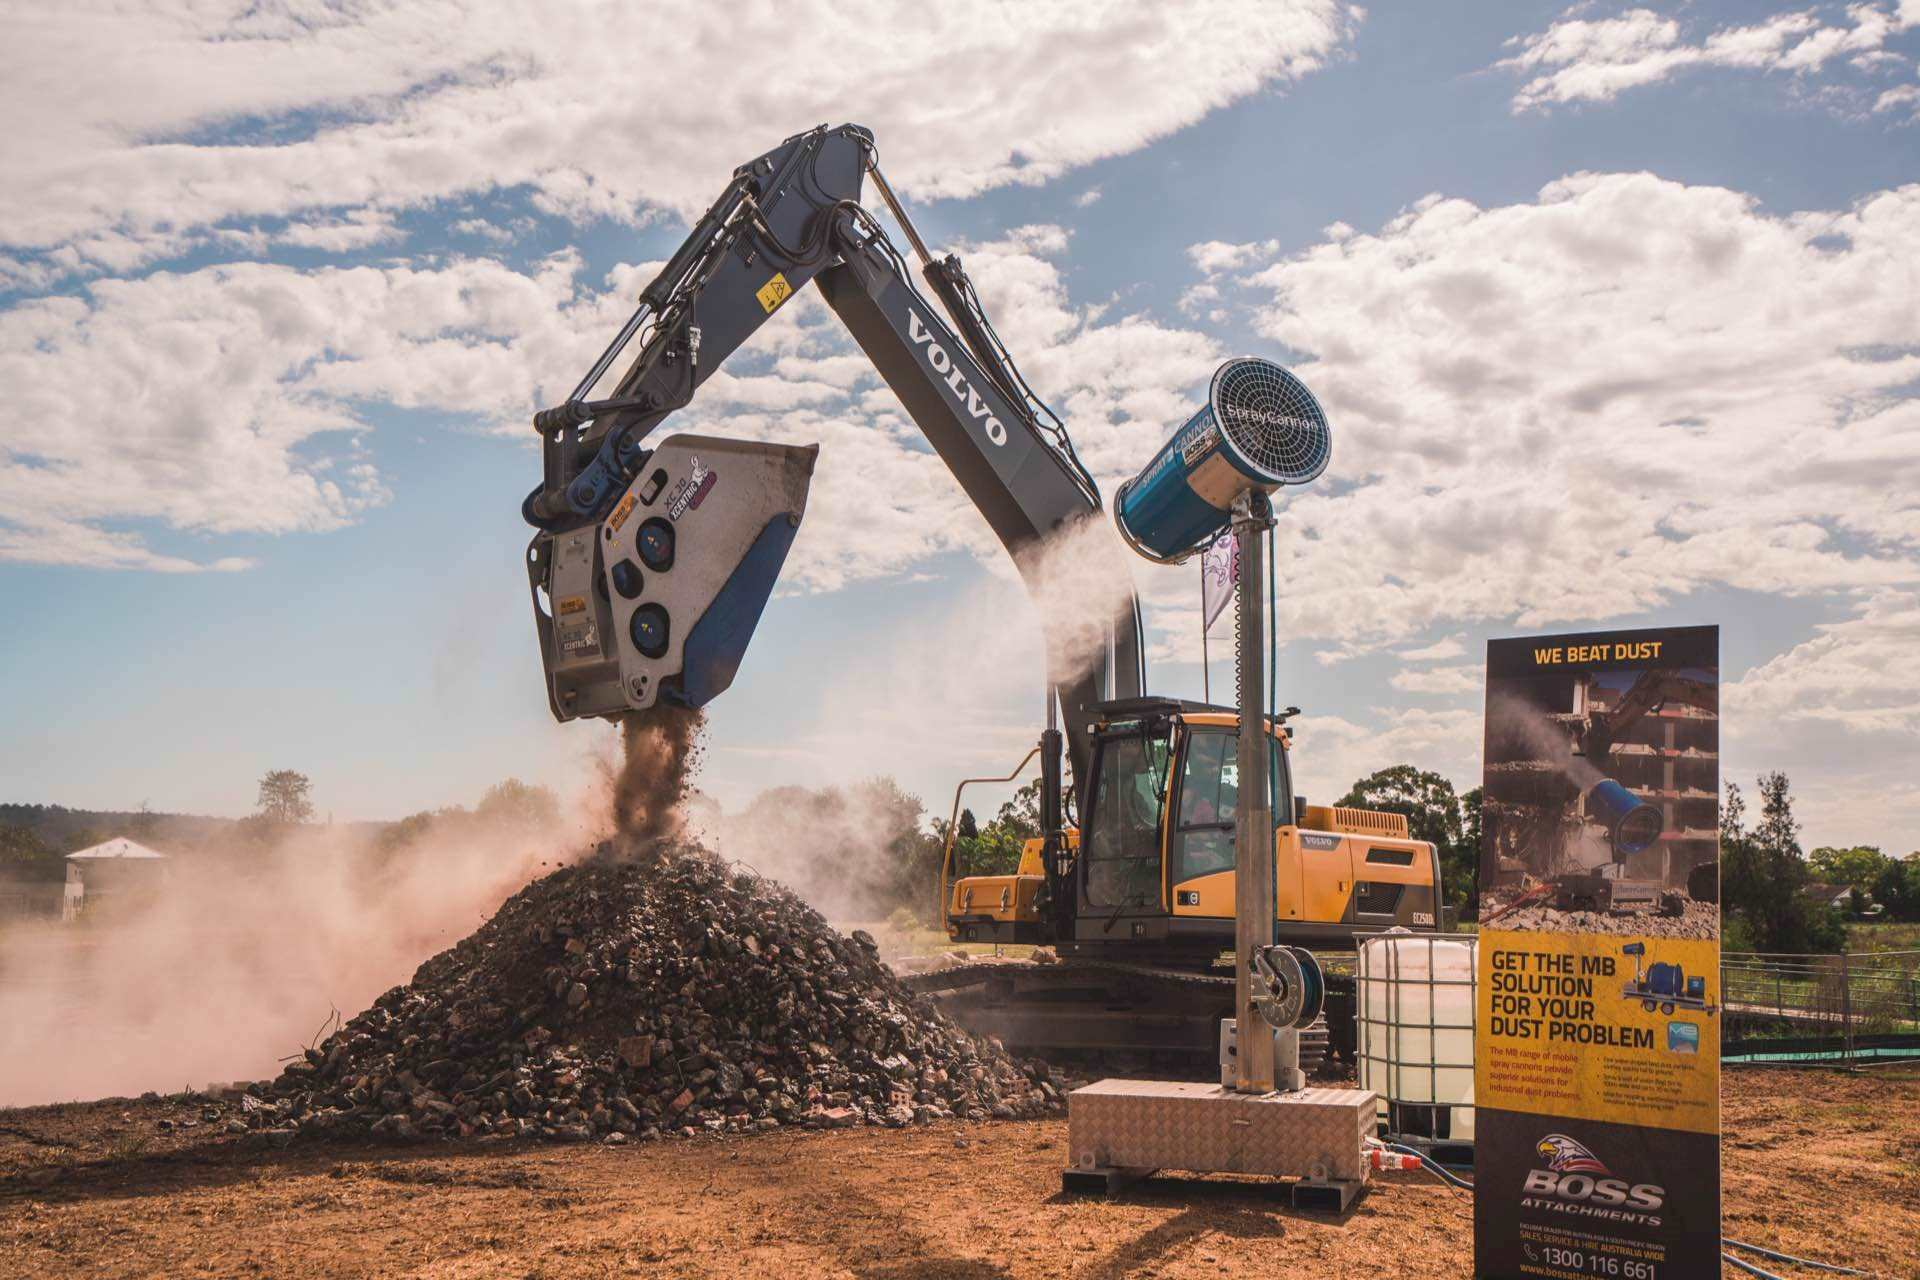 The Boss Demo site with Xcentric Crusher and MB Dust Cannon in operation